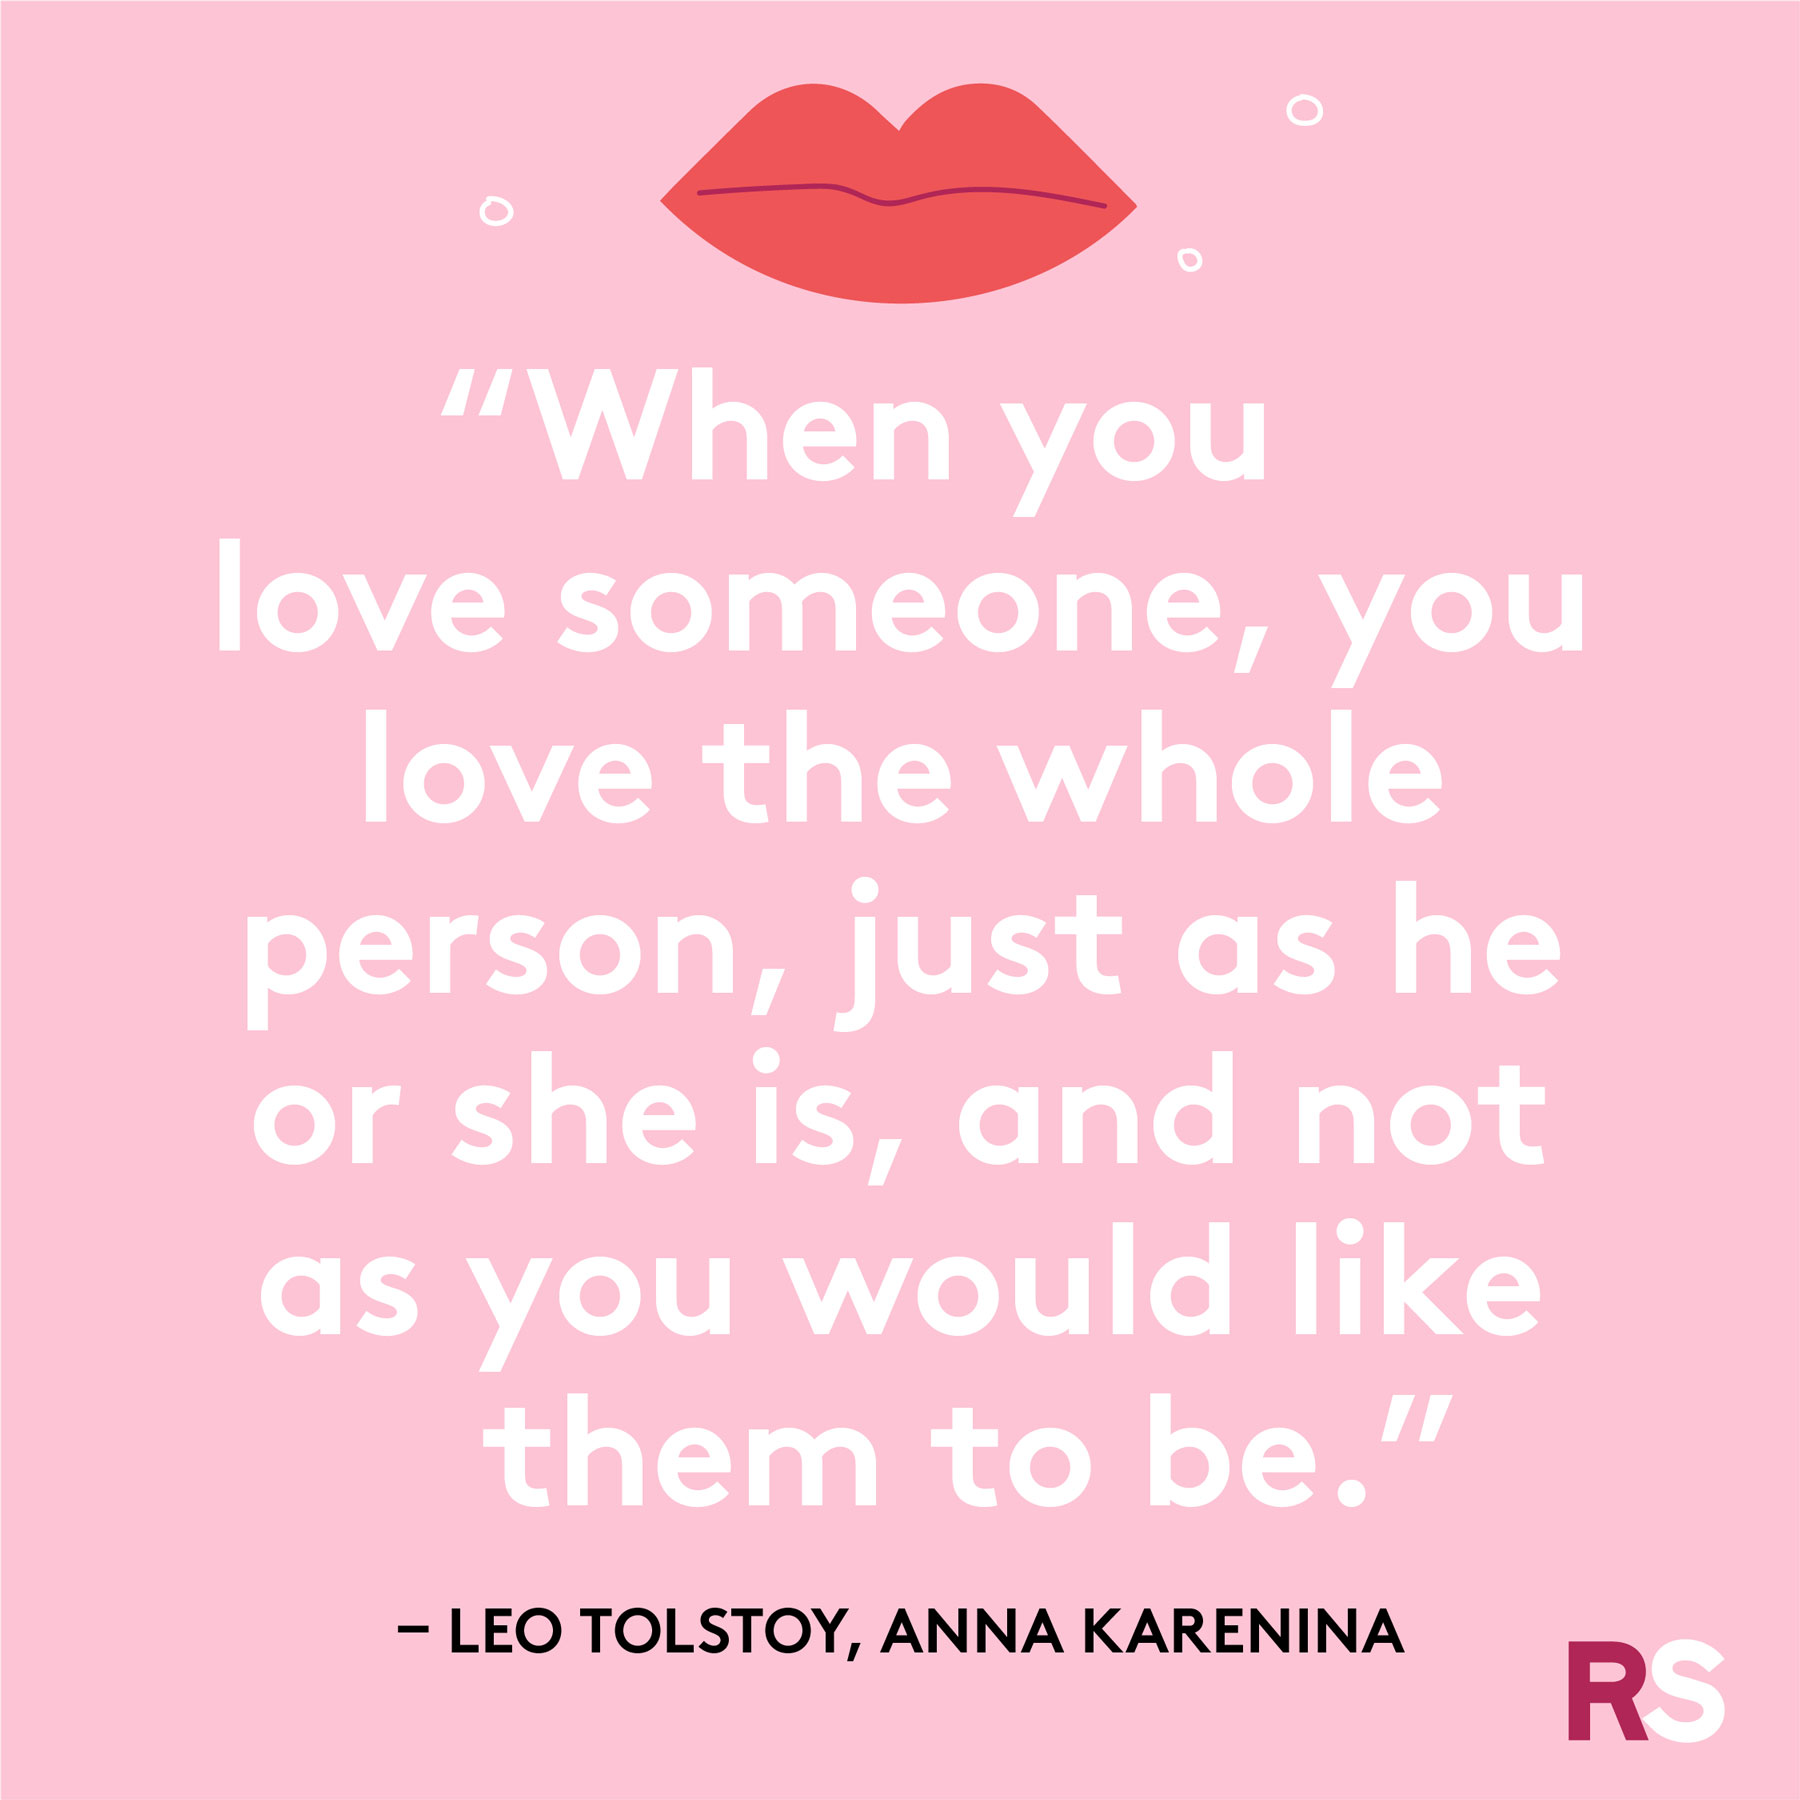 Love quotes, quotes about love - Leo Tolstoy, Anna Karenina